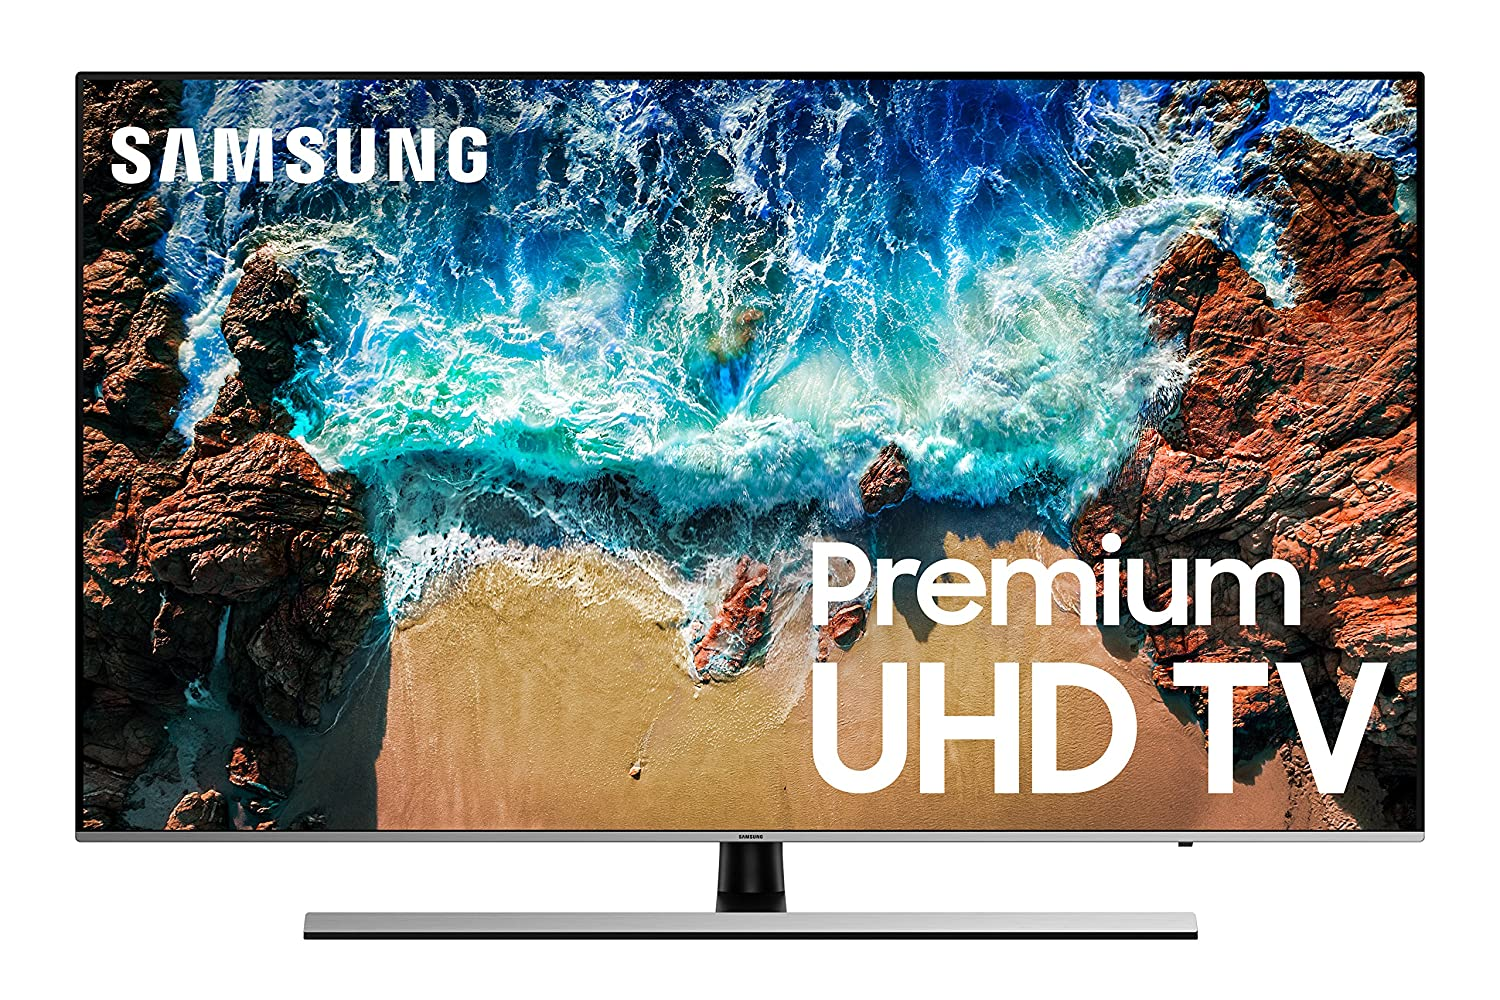 Samsung 65NU8000 TV Black Friday Deal 2020